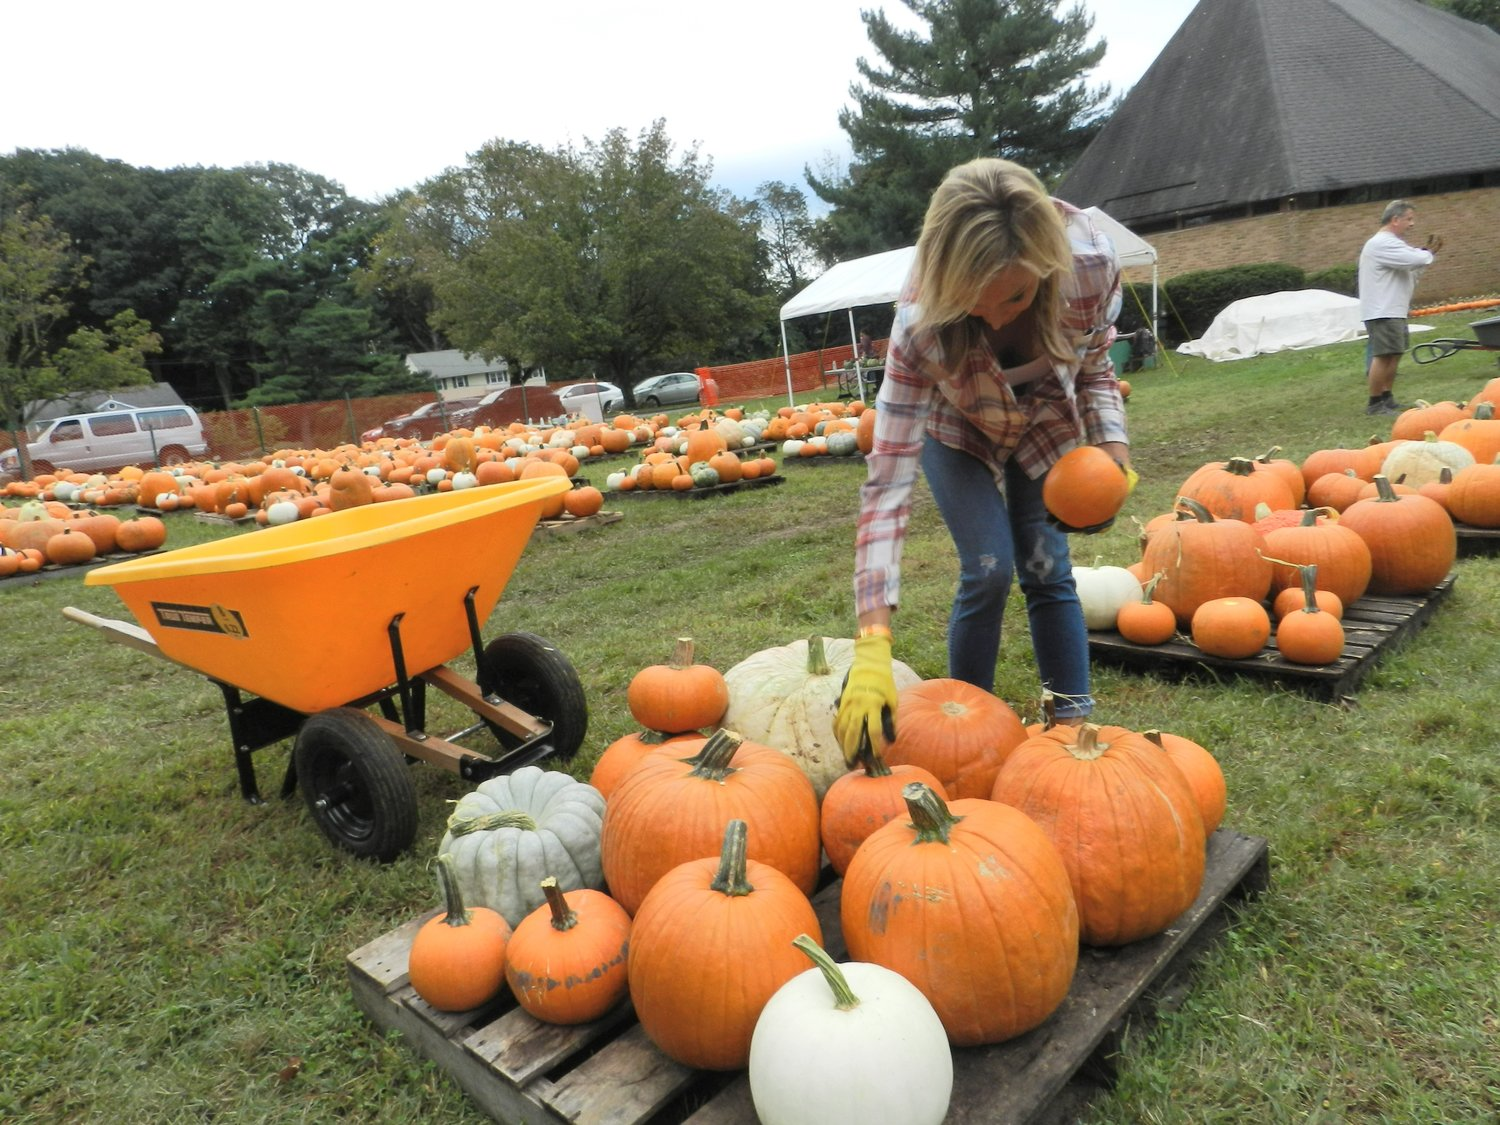 Sea Cliff resident Christina Volz knows it's all in the presentation, which she worked to perfect in United Methodist Church's pumpkin patch.